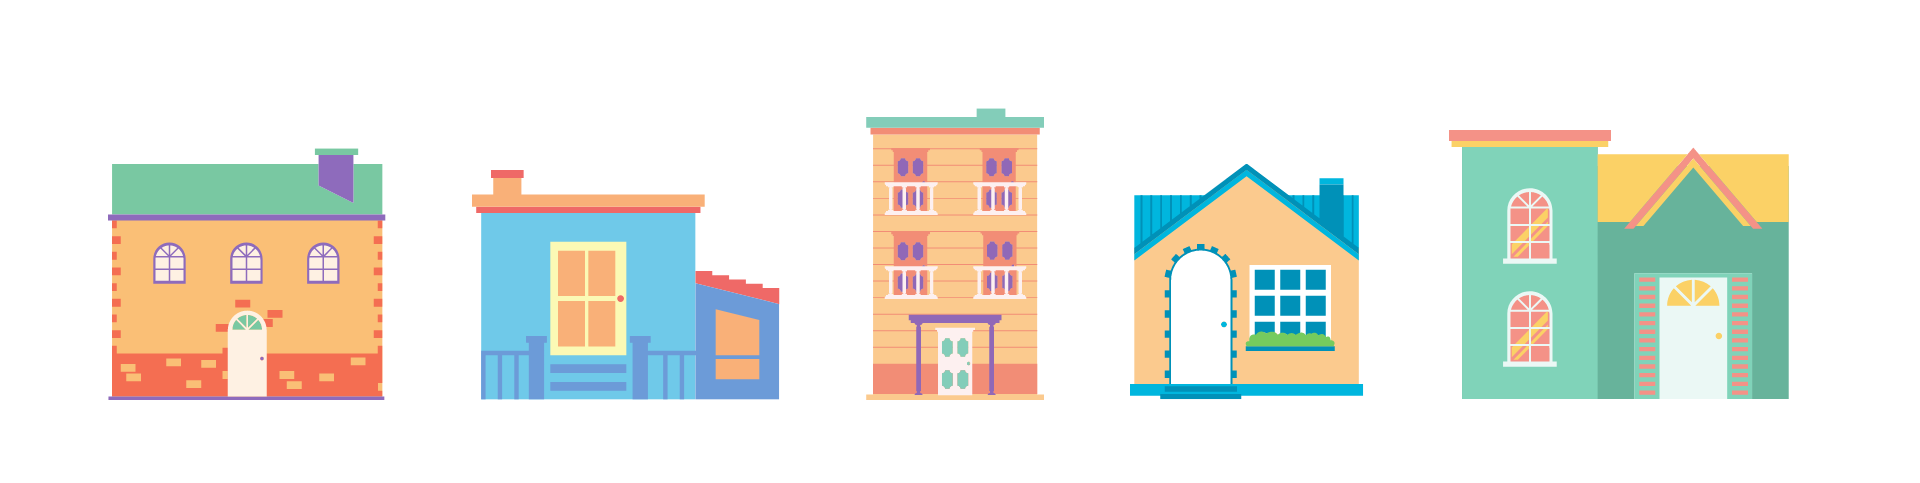 Colorful illustration of five different types of house.